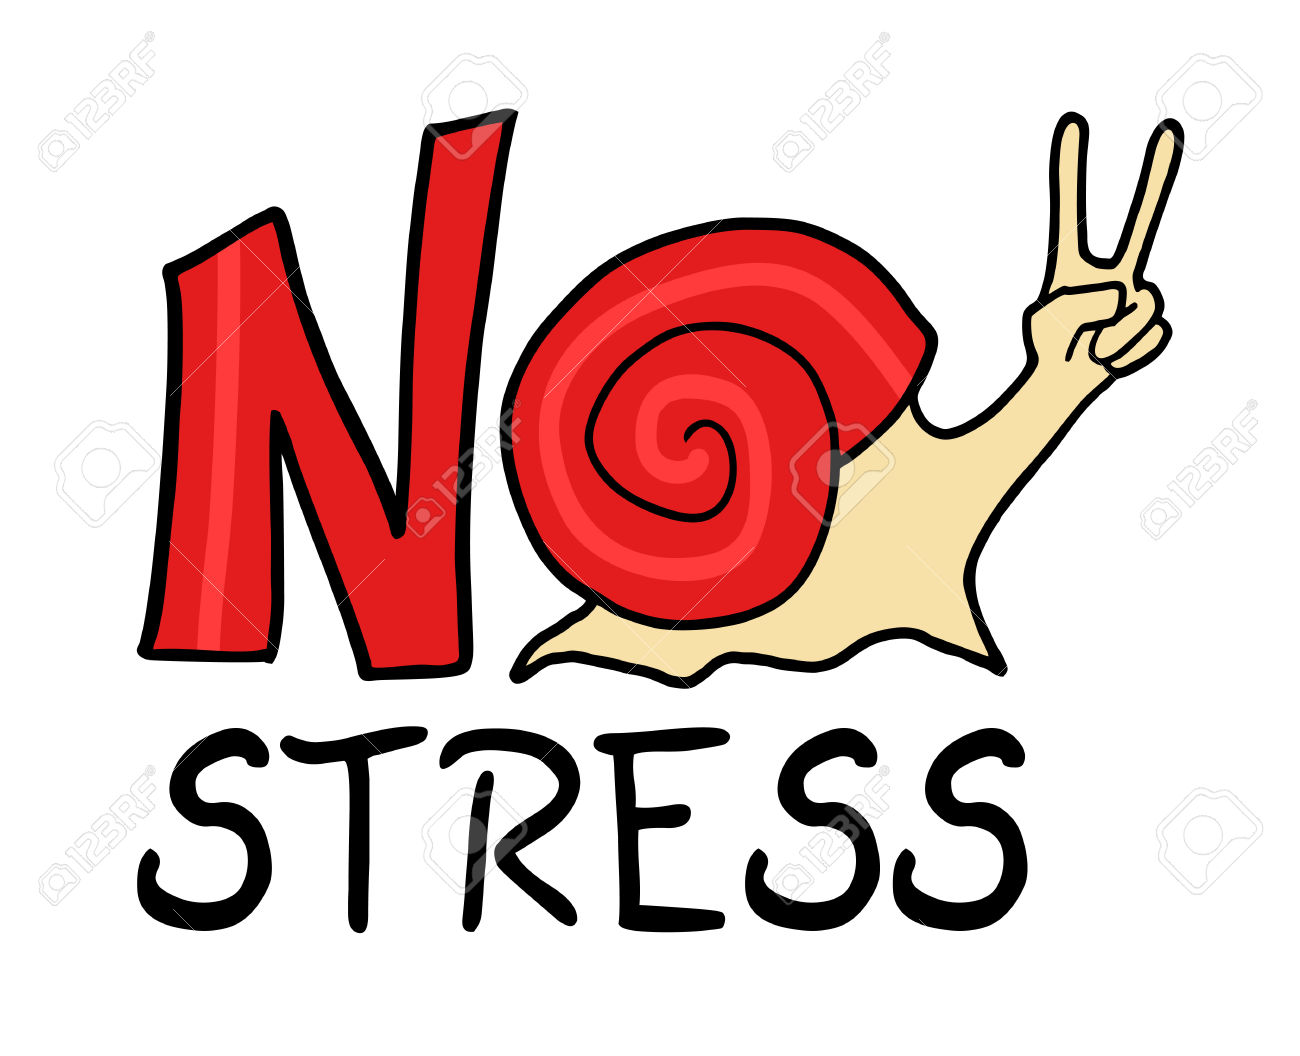 holiday-stress-clipart-15.jpg